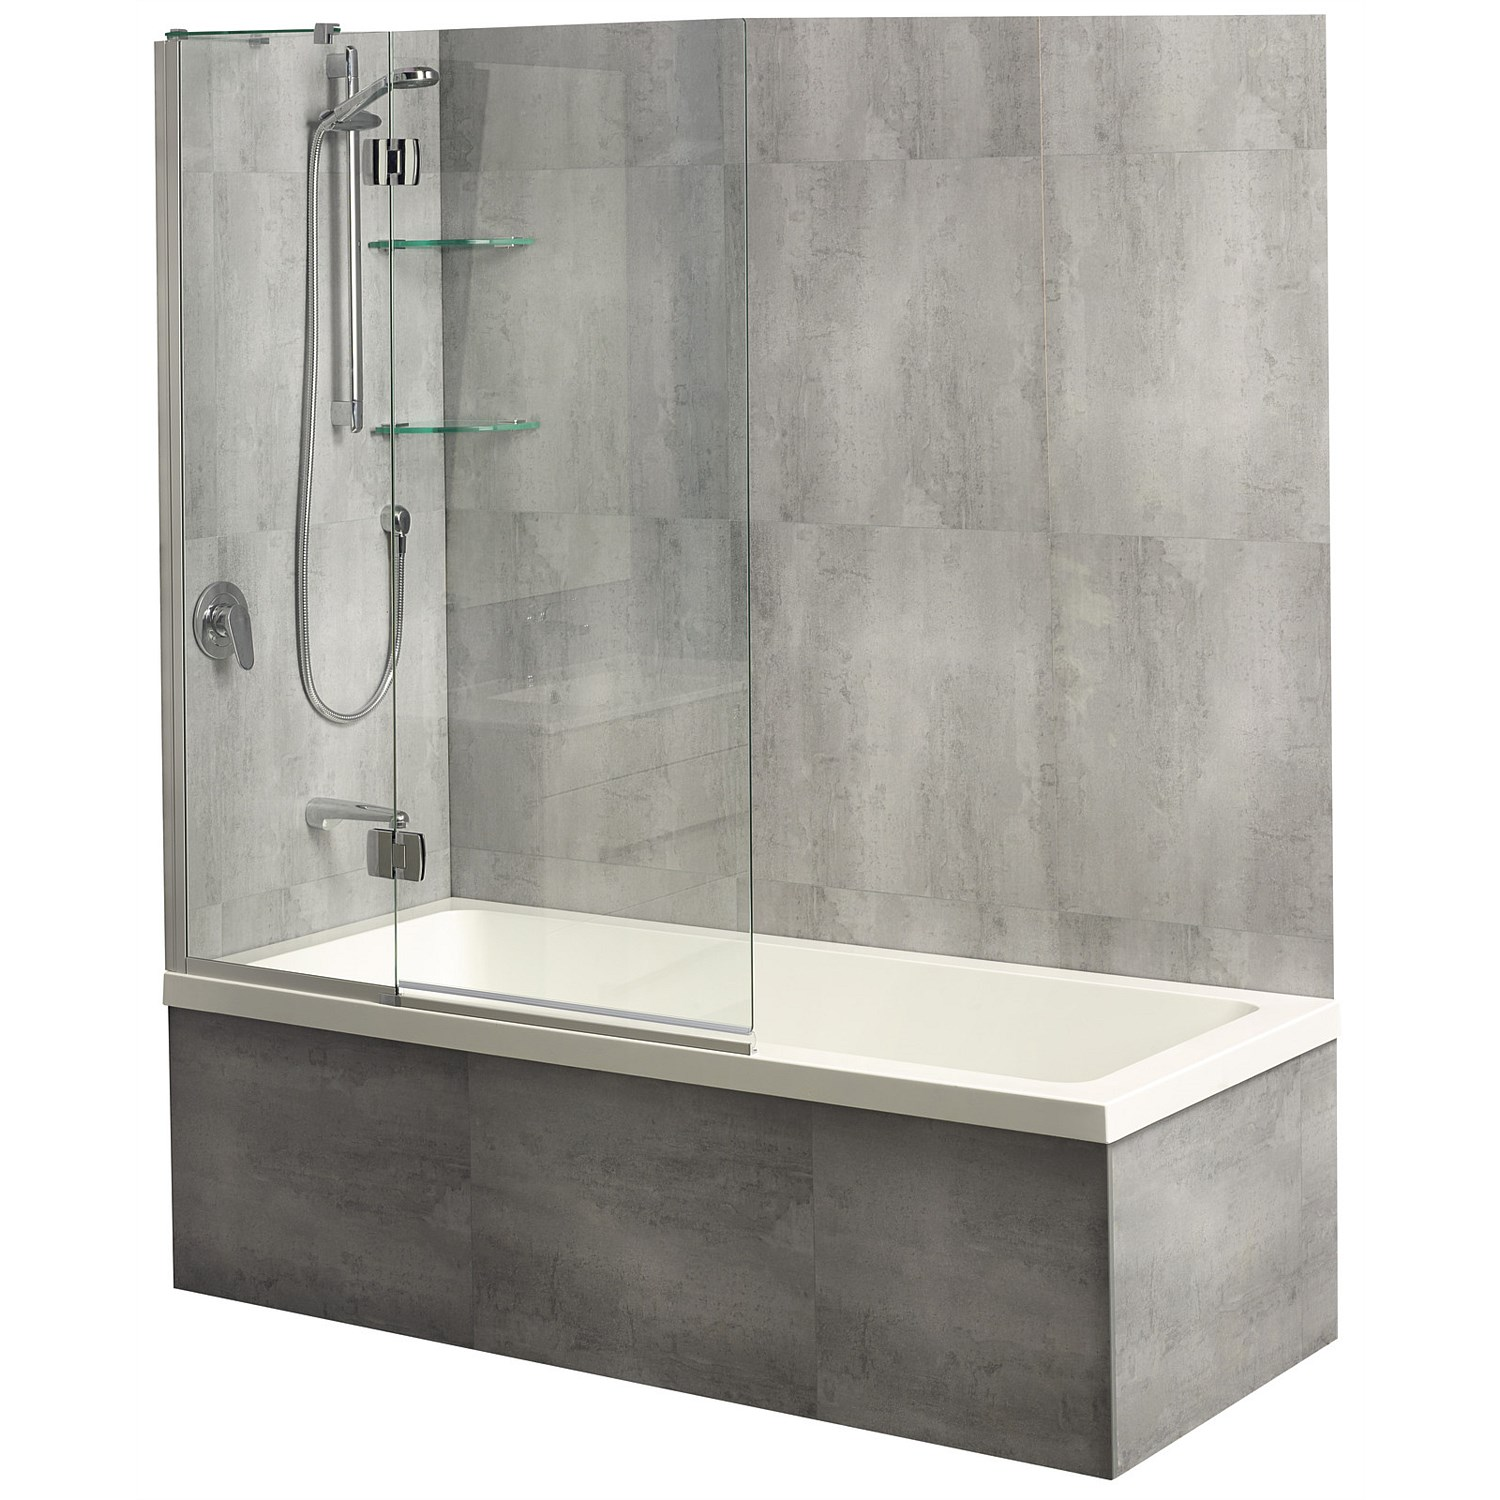 Showers Plumbing World Clearlite Varo 1675mm Shower